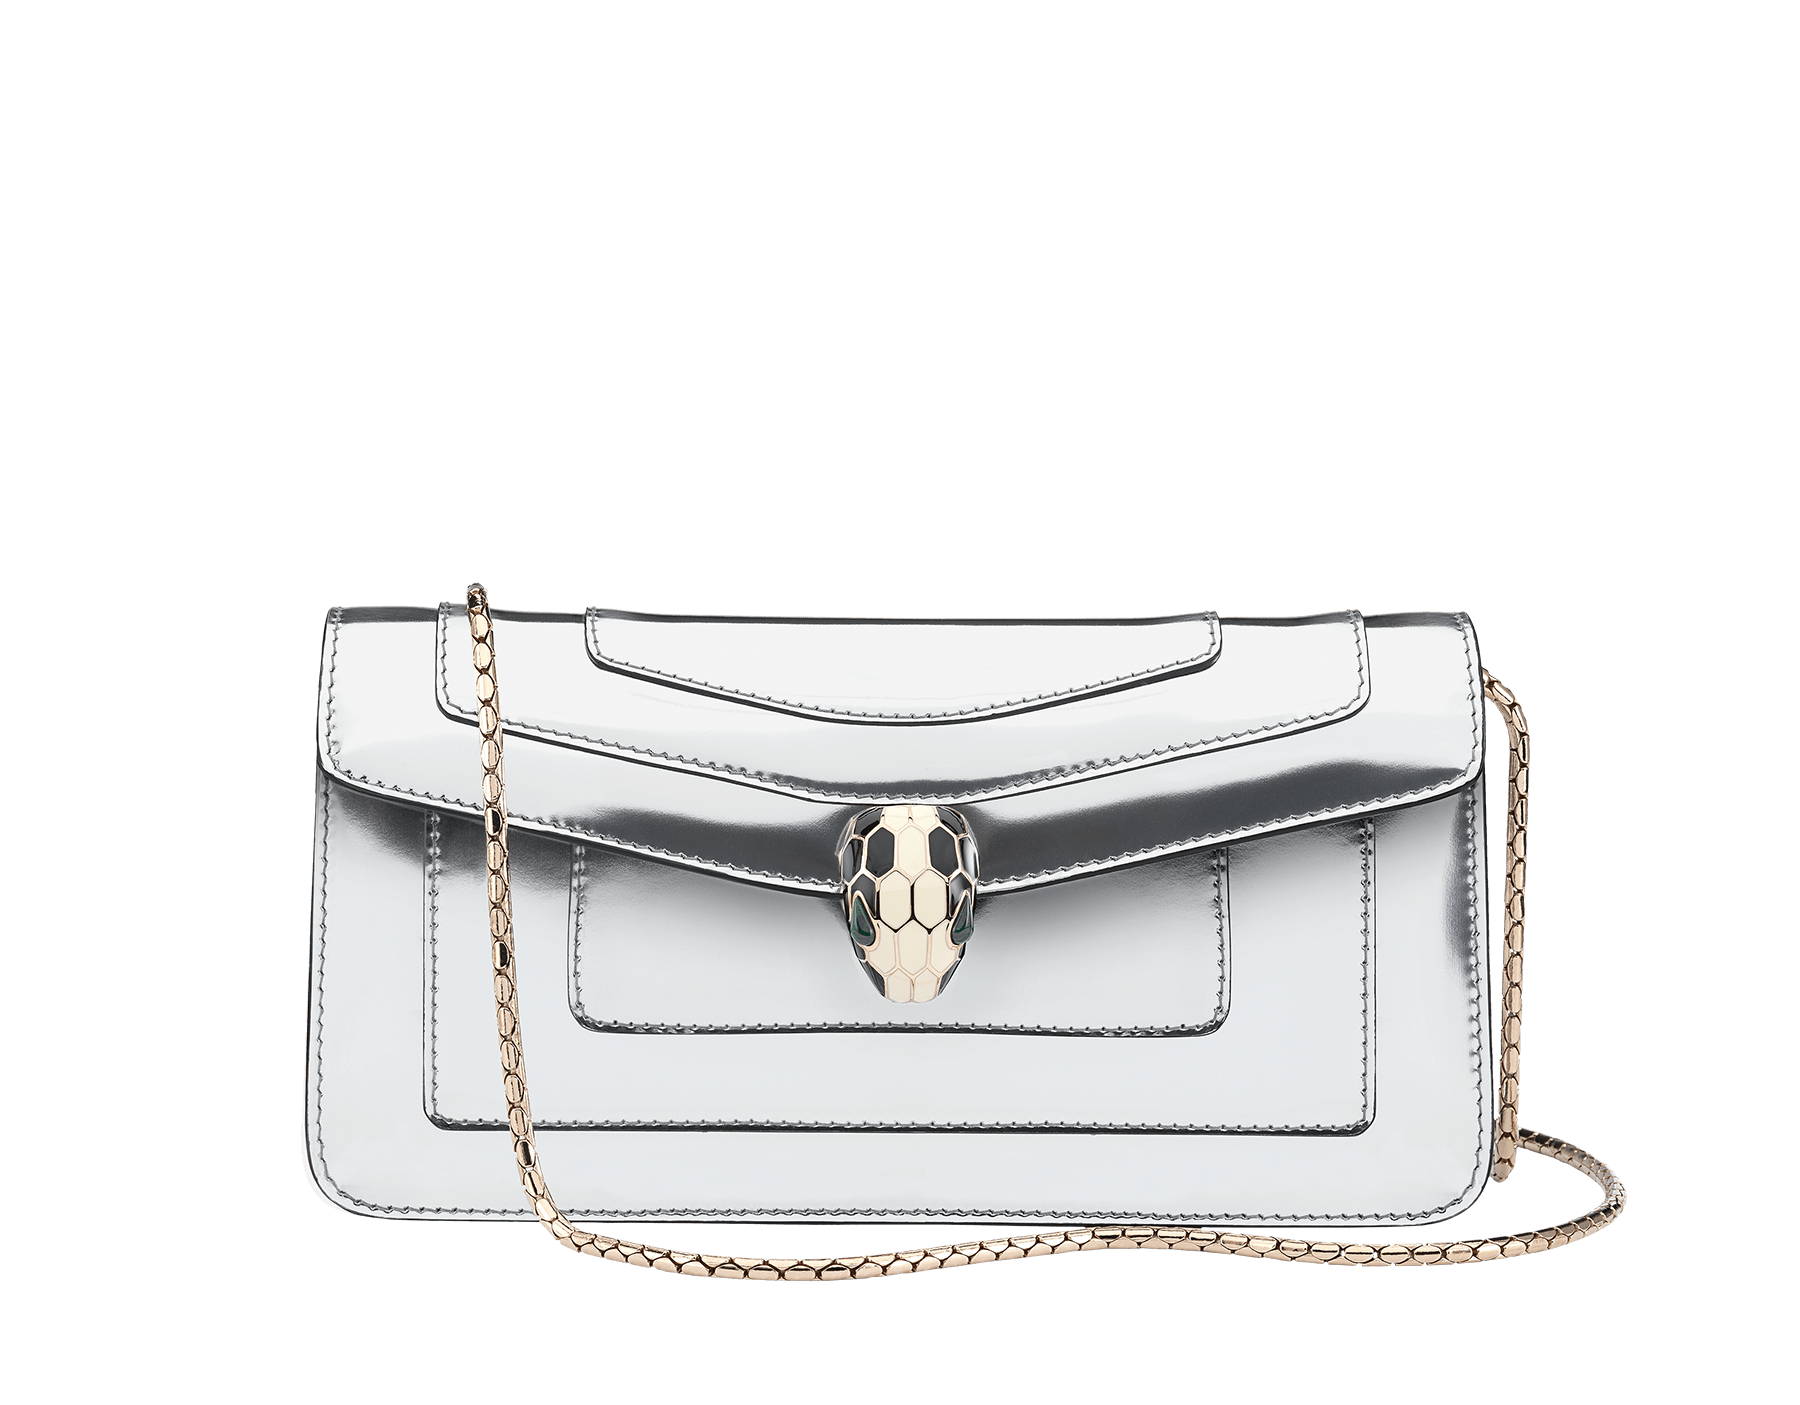 Shoulder bag Serpenti Forever in black calf leather with brass light gold plated Serpenti head closure in black and white enamel with eyes in malachite. 280026 image 1